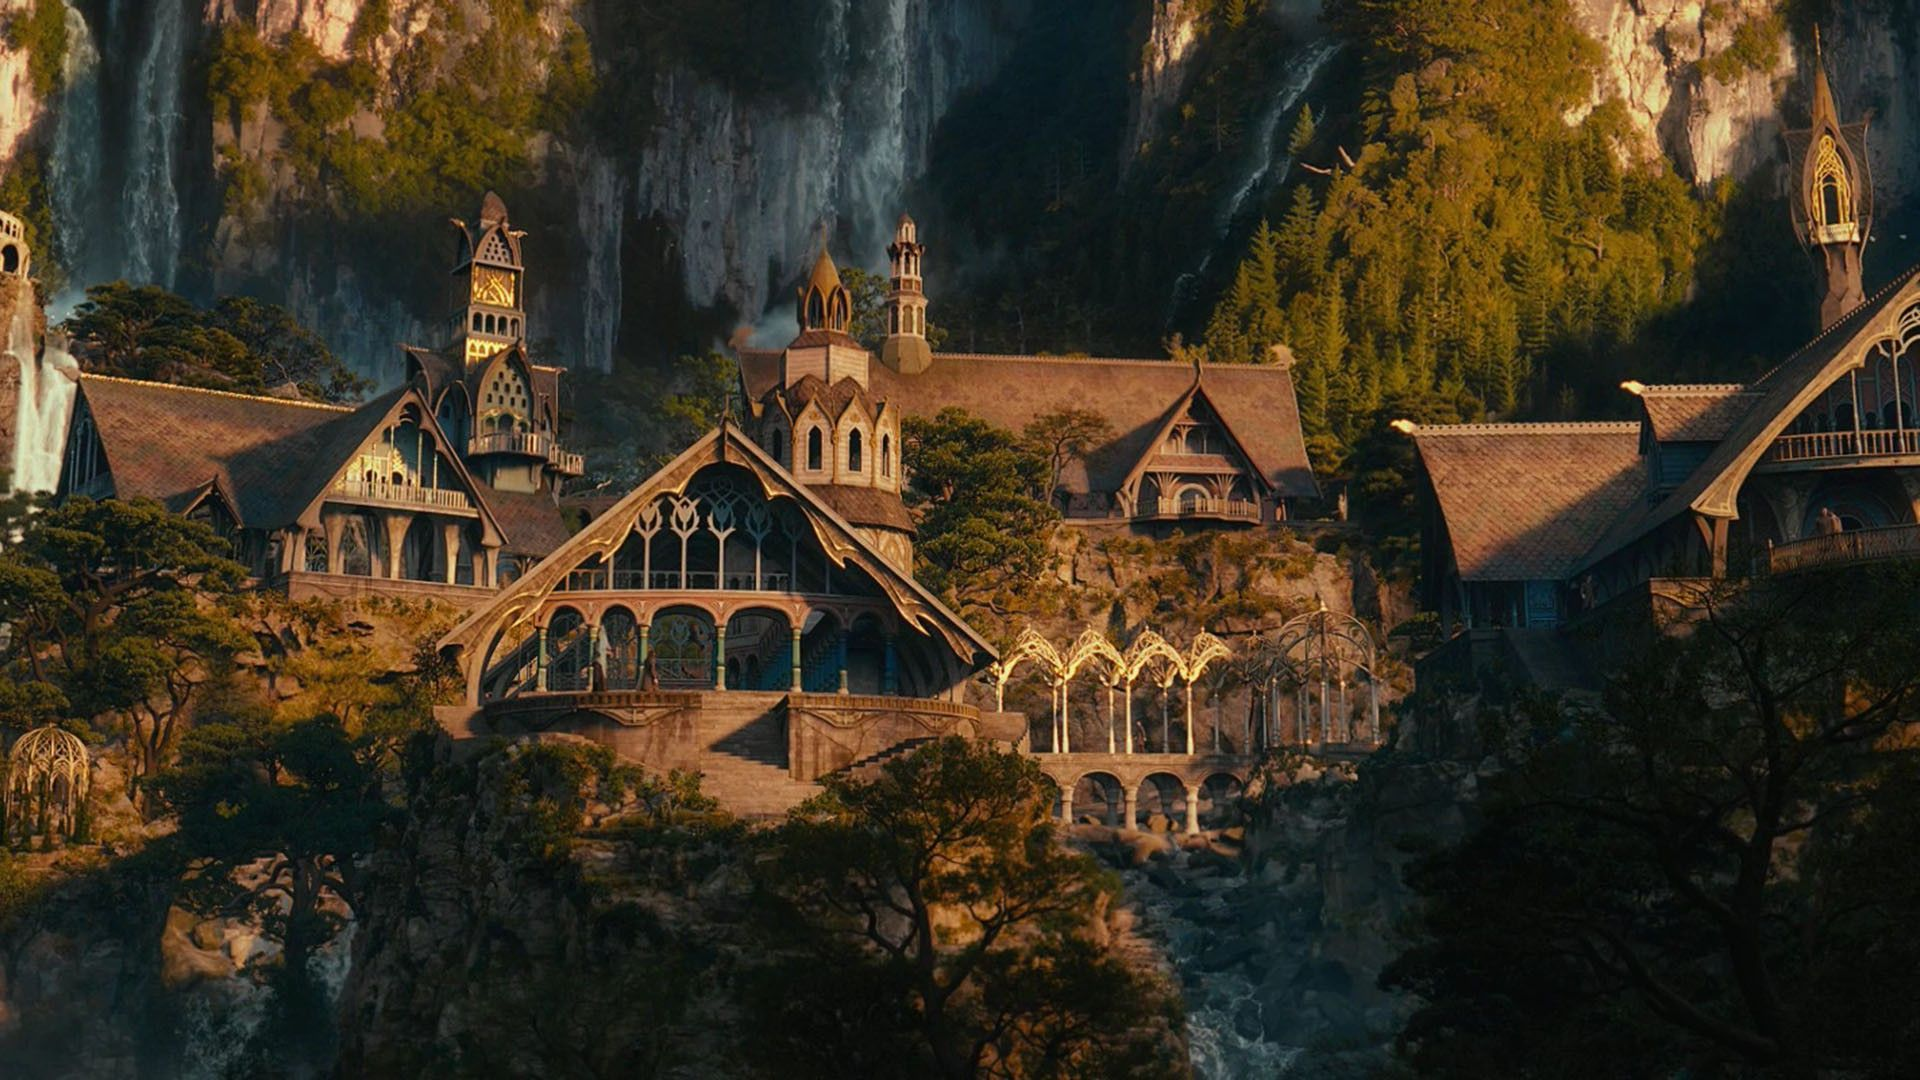 Lord Of The Rings Wallpaper Hd Rivendell.